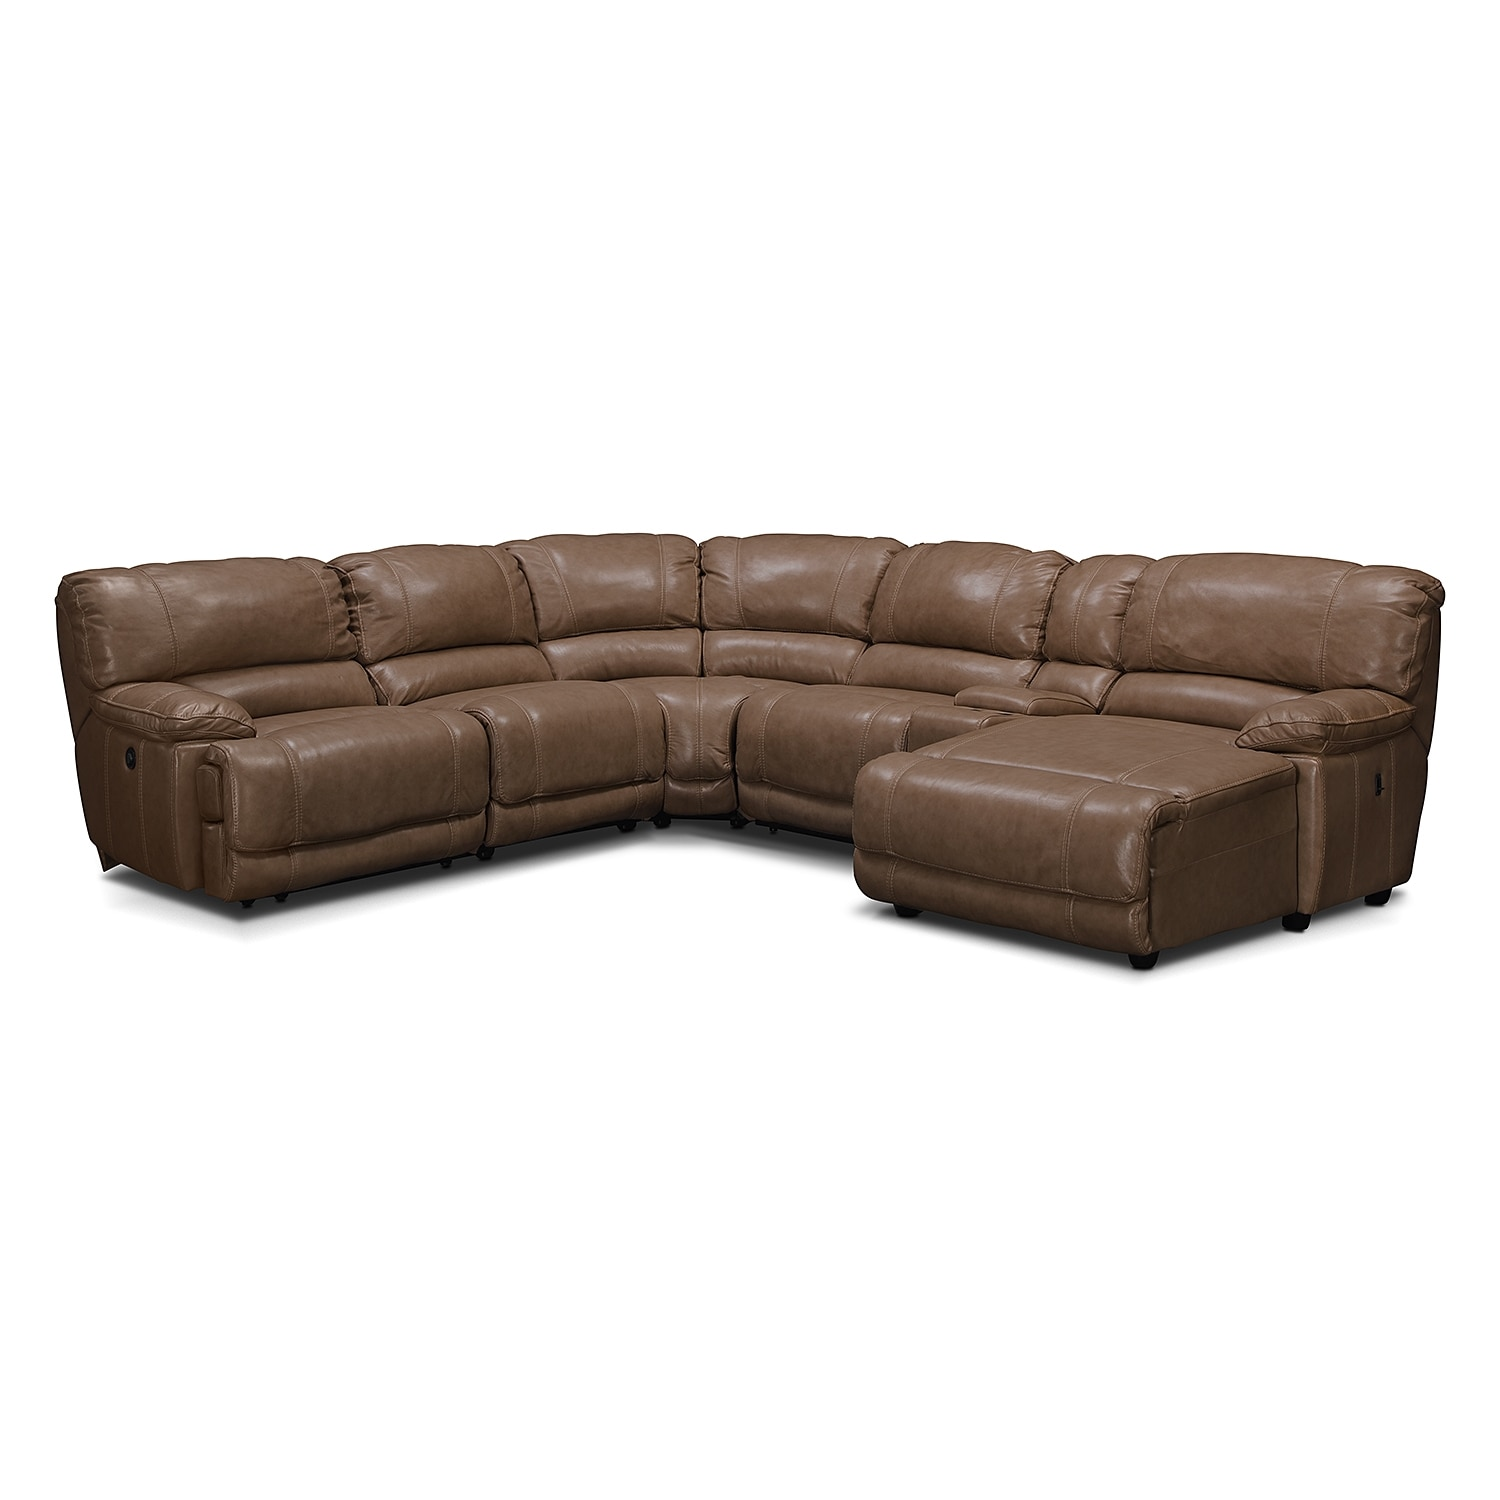 St Malo 6 Piece Power Reclining Sectional with Right Facing